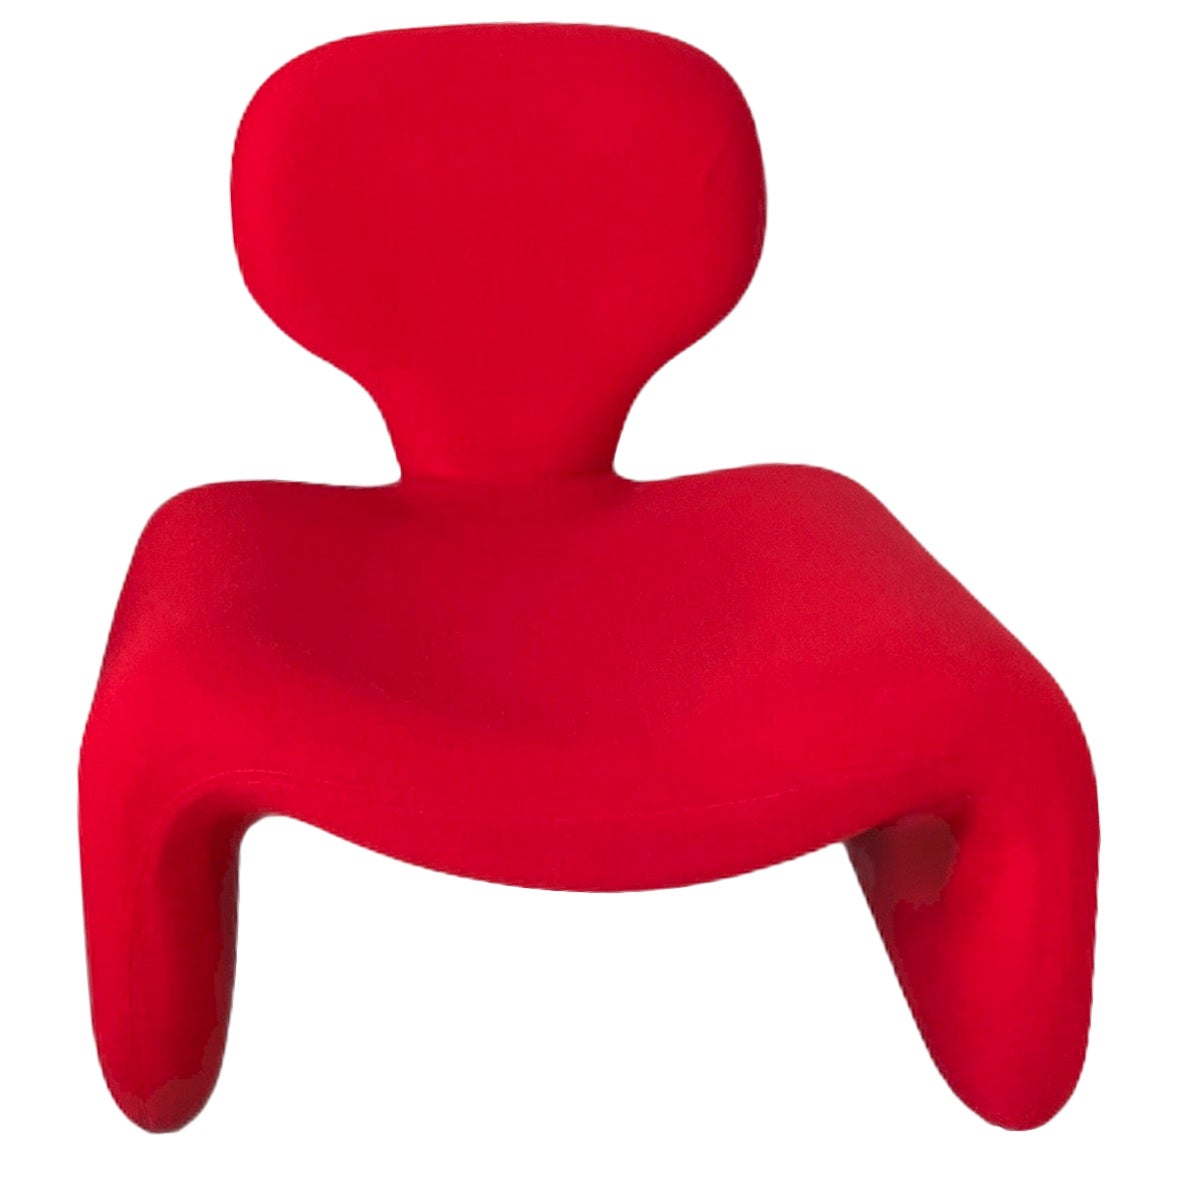 Djinn Chair, 1960s, by Olivier Mourgue for Airborne